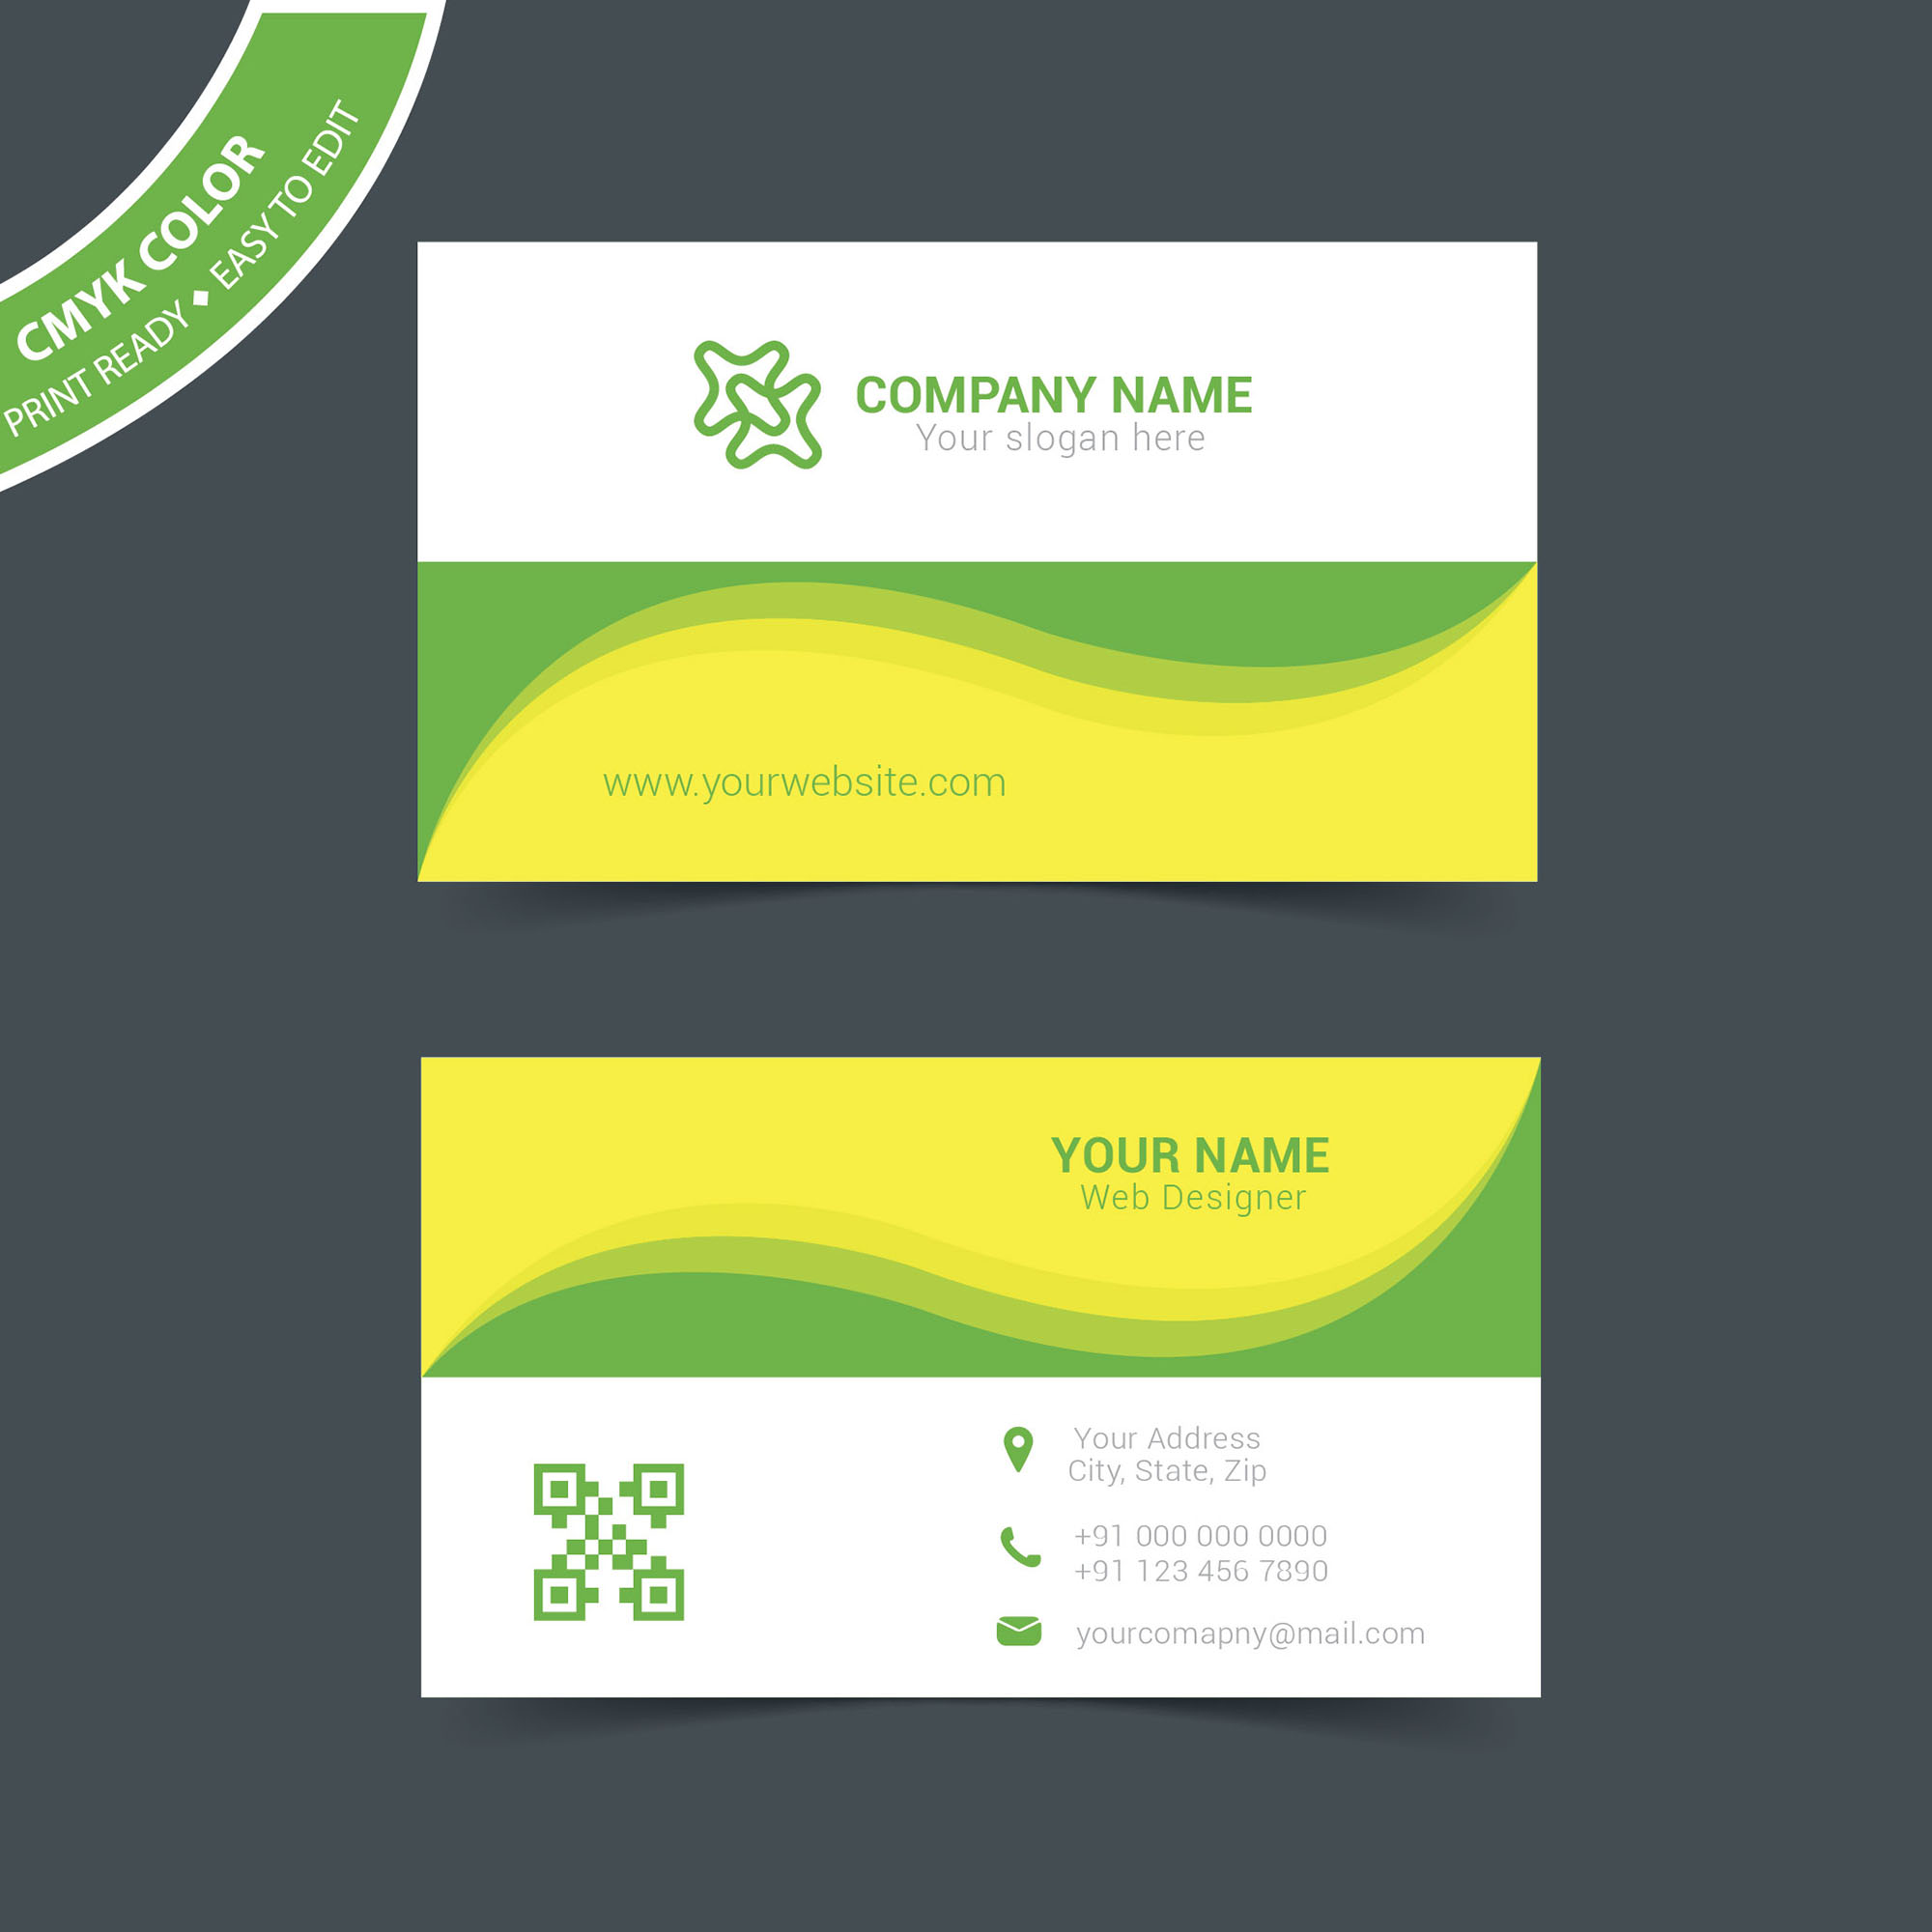 Corporate business card vector free download wisxi business card business cards business card design business card template design templates reheart Gallery